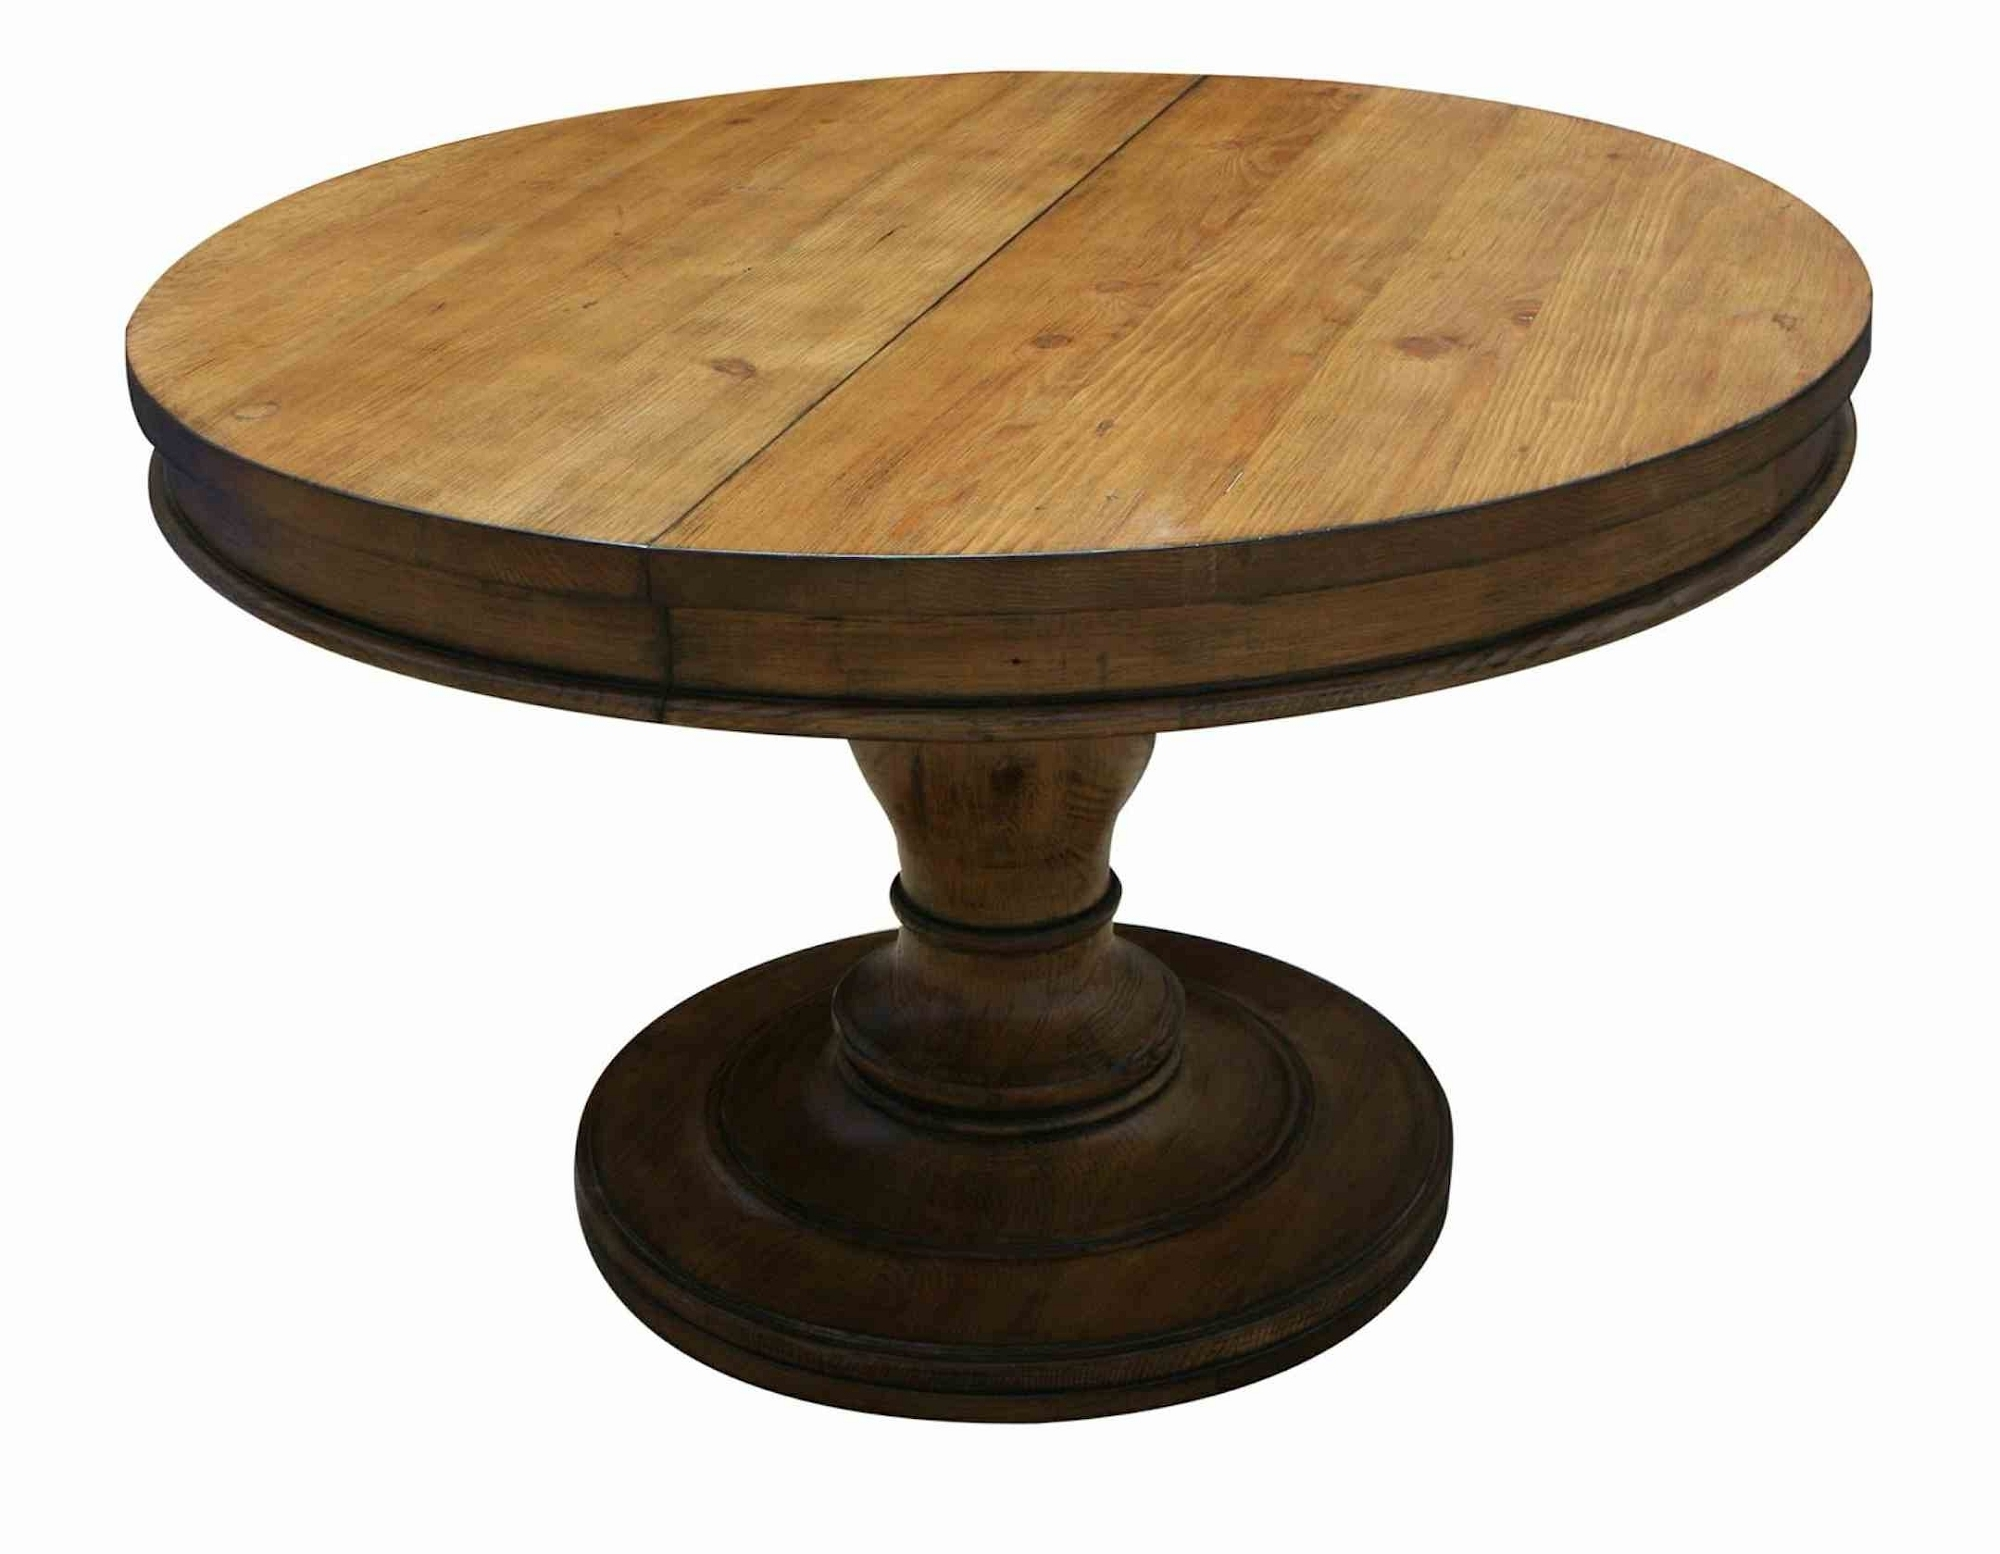 Cheap Round Dining Tables Regarding Trendy Cheap Rustic Round Extendable Dining Table Along With Made In (View 5 of 25)